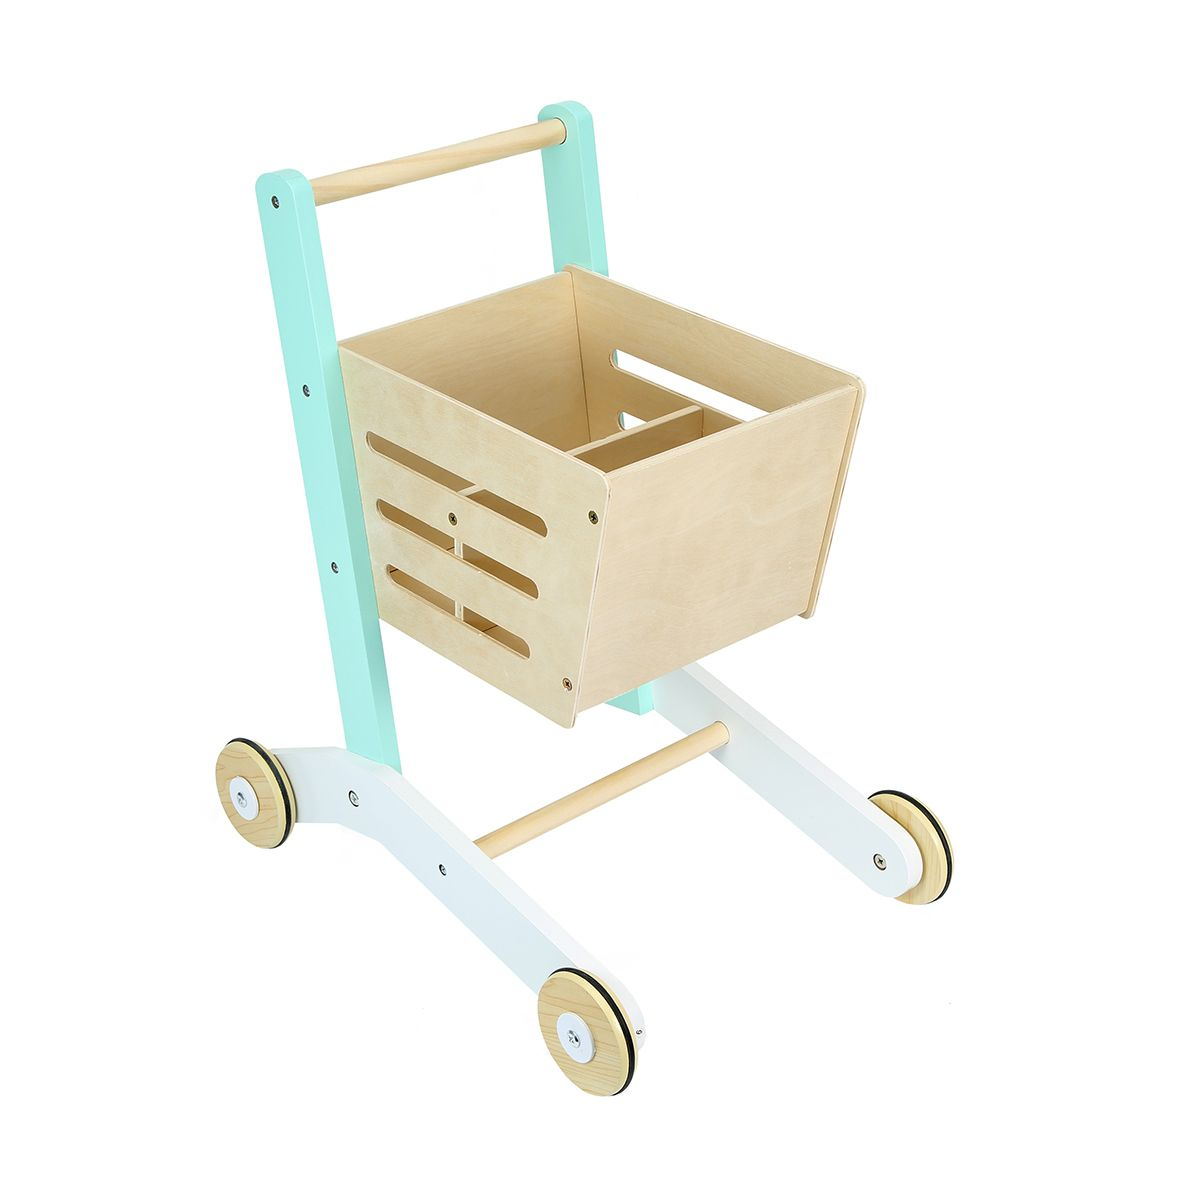 Wooden Shopping Trolley Toy Kmart 15 Shopping Trolley Wooden Wooden Toys